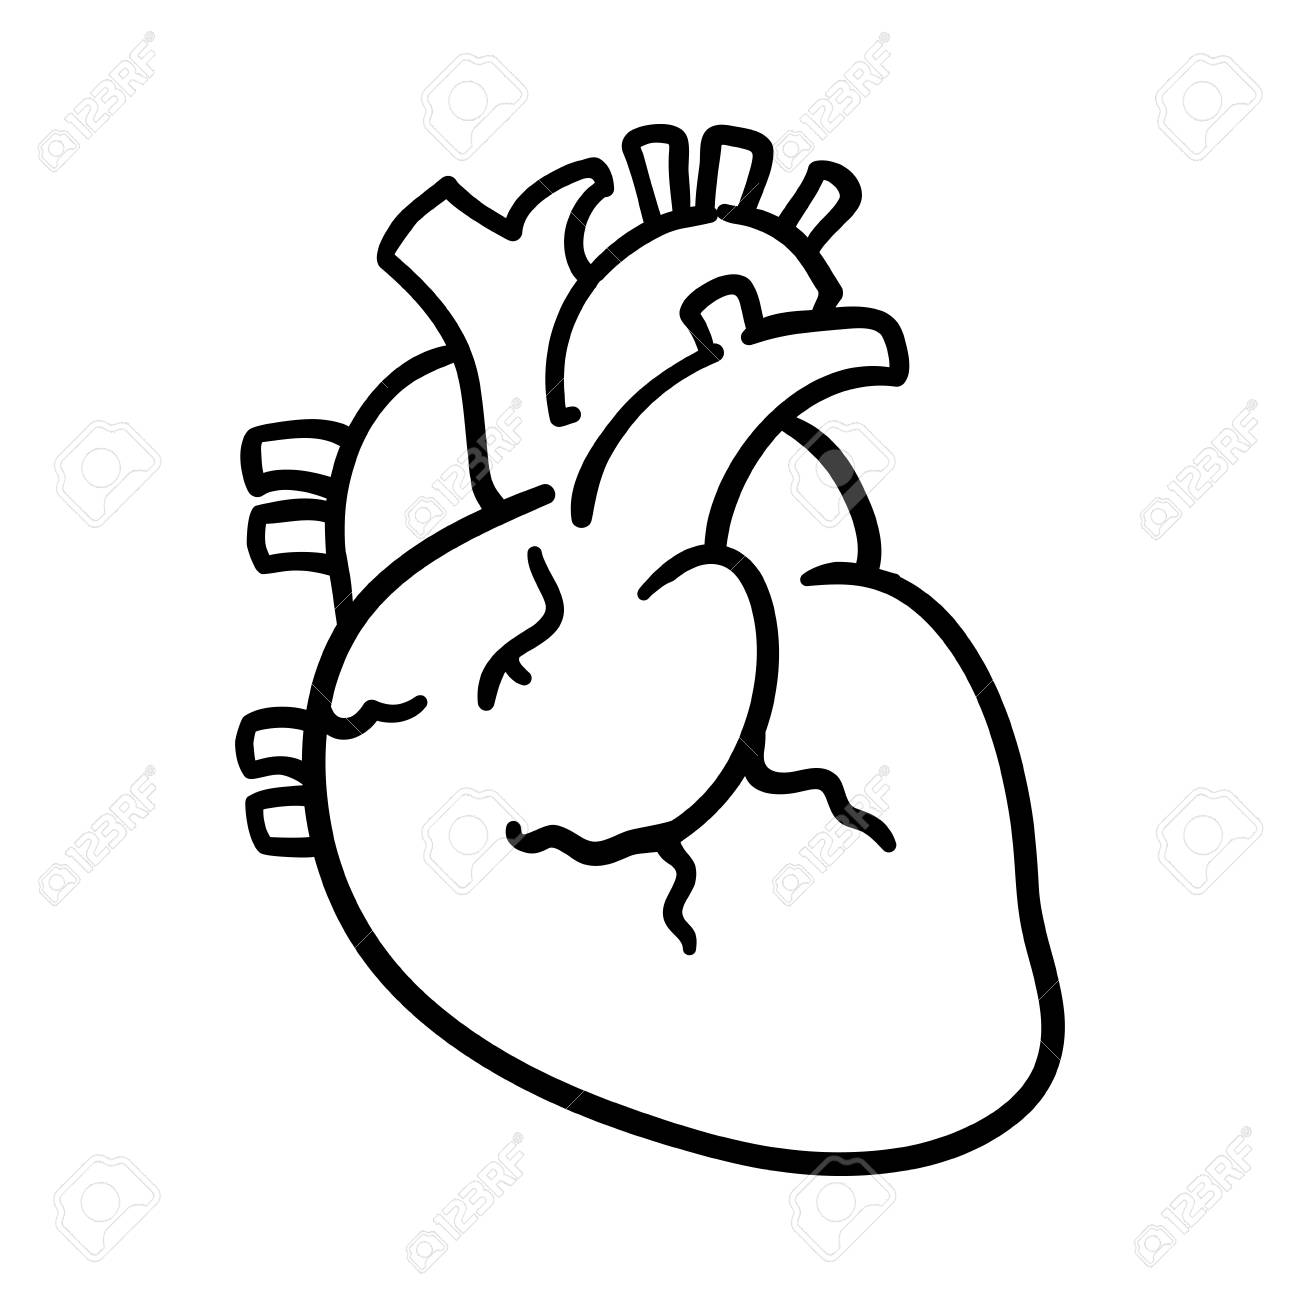 isolated human heart icon vector illustration graphic design